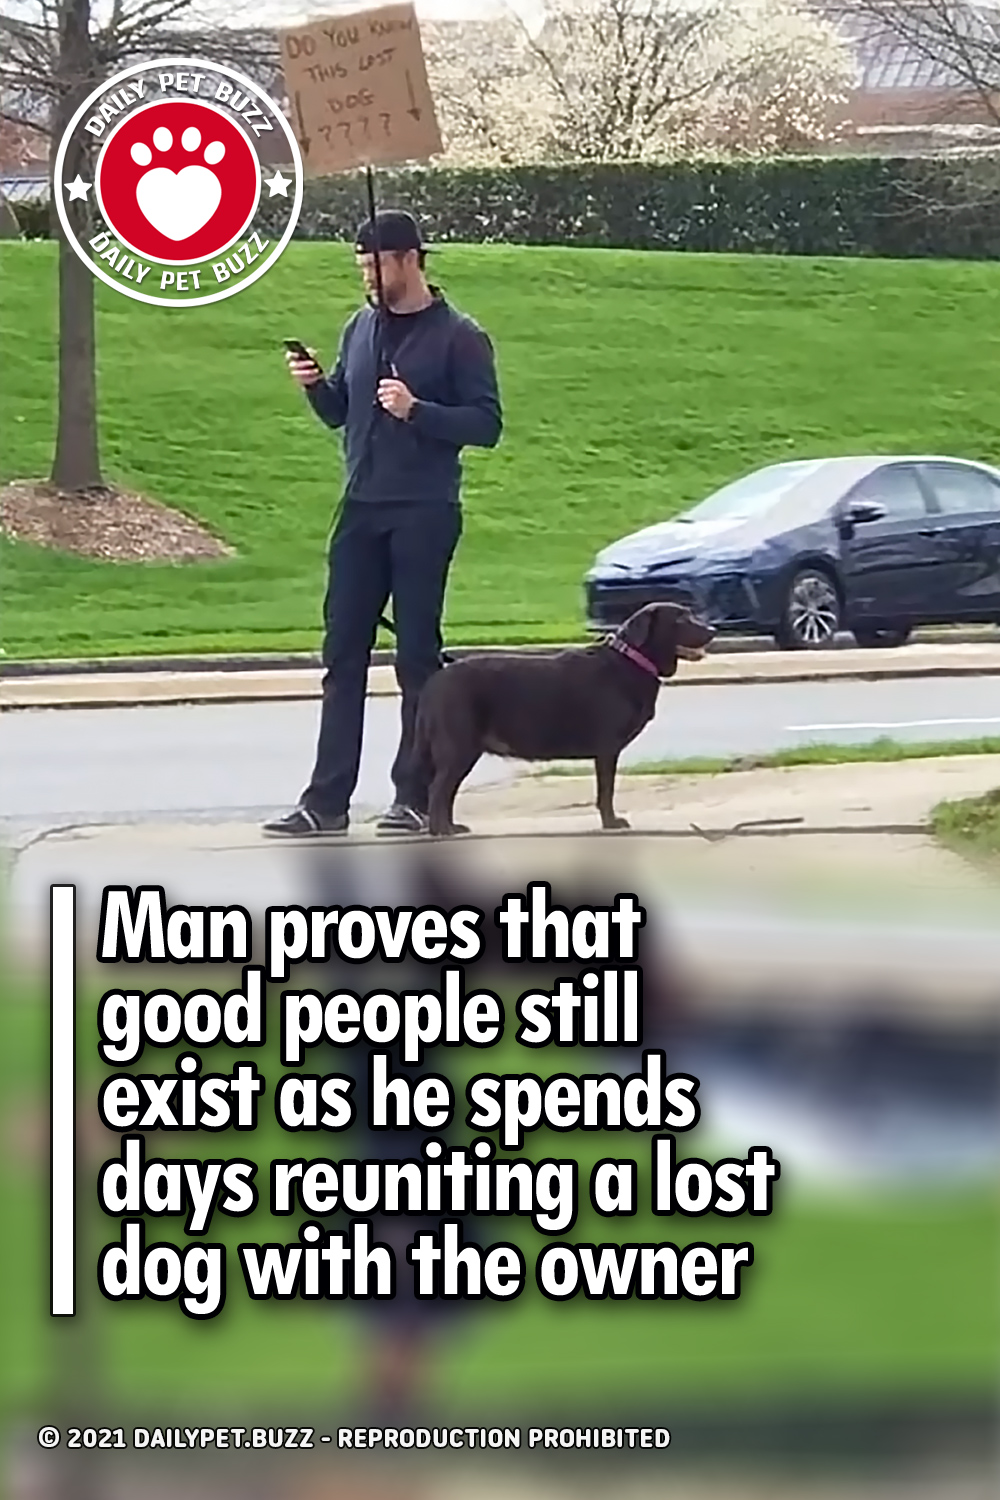 Man proves that good people still exist as he spends days reuniting a lost dog with the owner